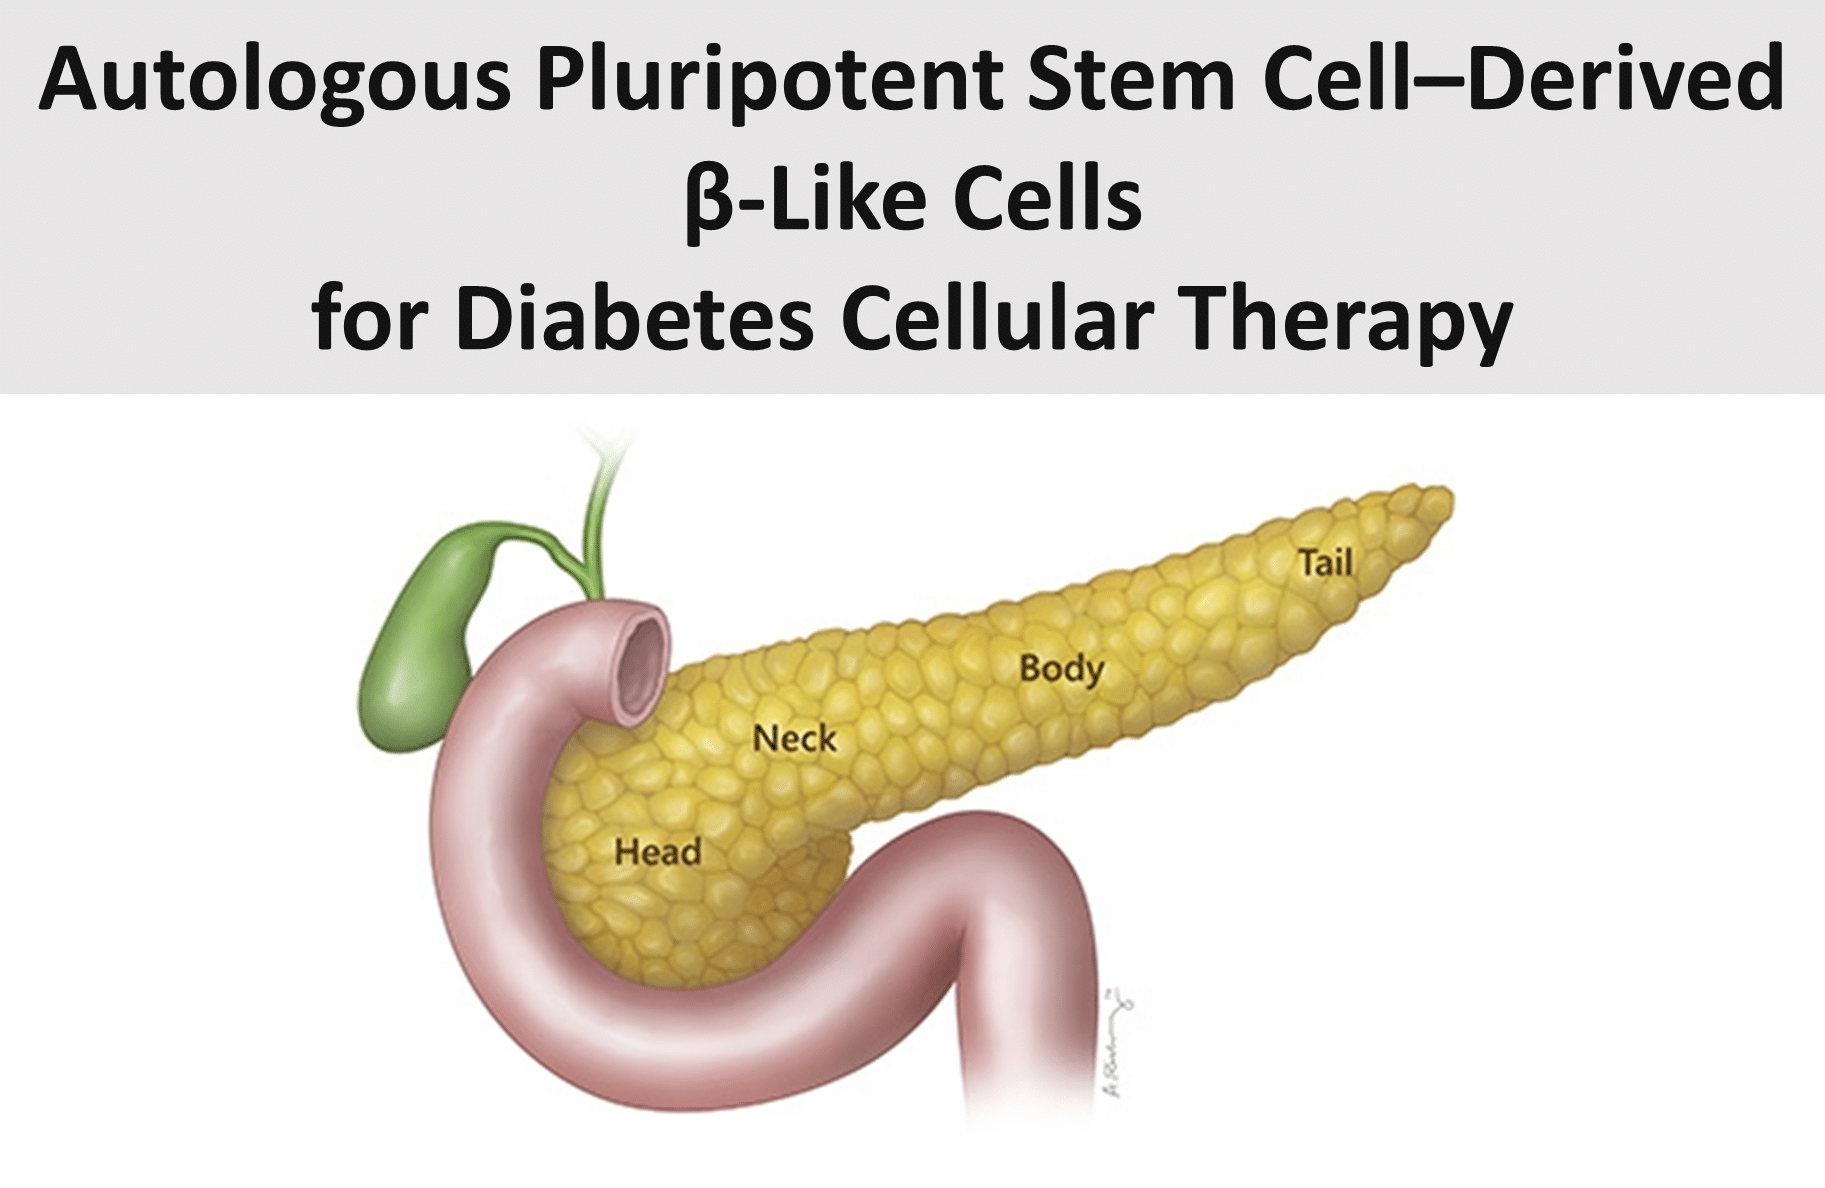 Autologous Pluripotent Stem Cell–Derived β-Like Cells for Diabetes Cellular Therapy